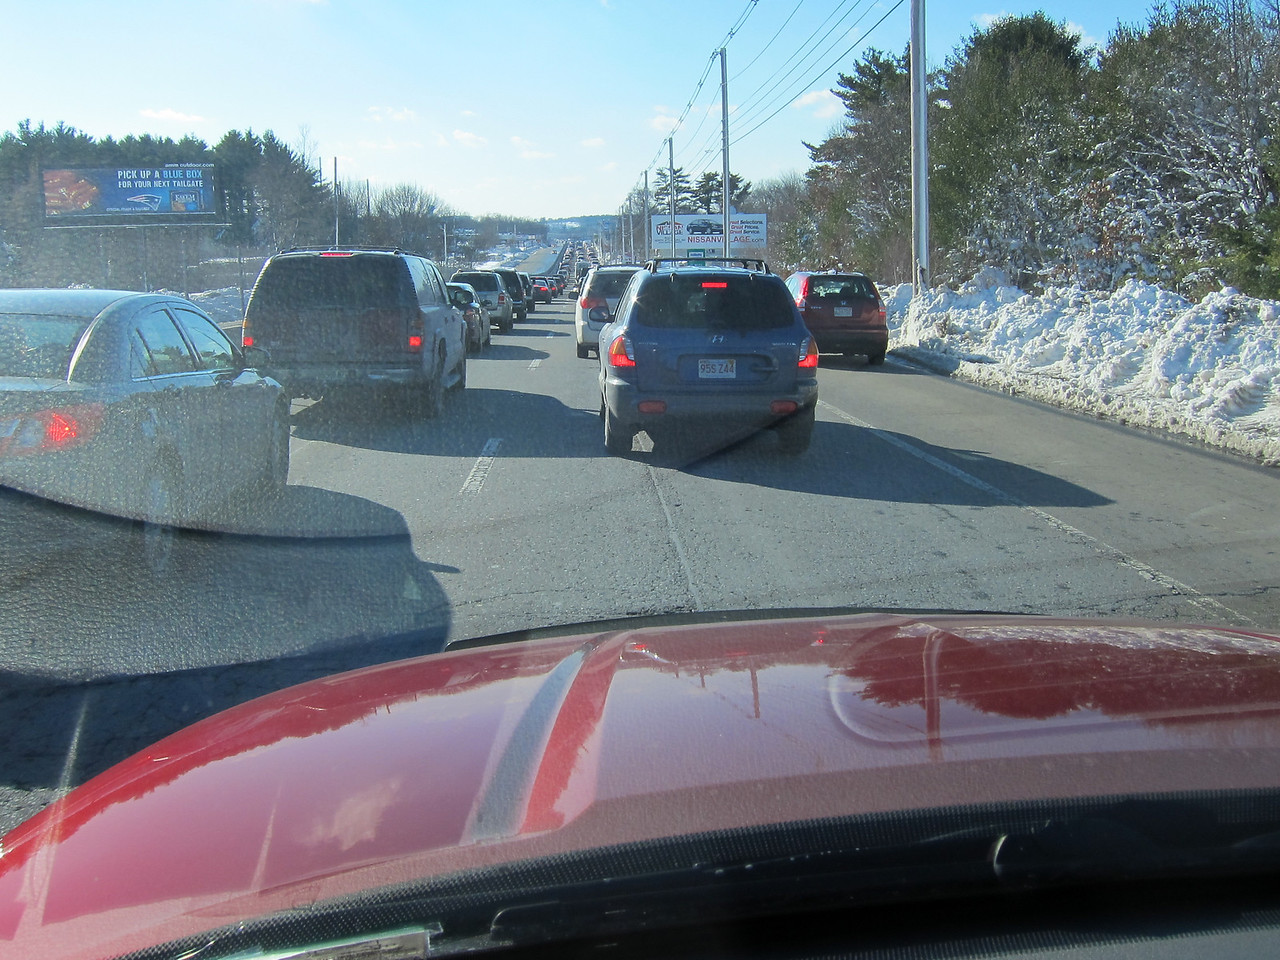 A long line of bumper-to-bumper traffic approaching Gillette Stadium - 16 January 2011